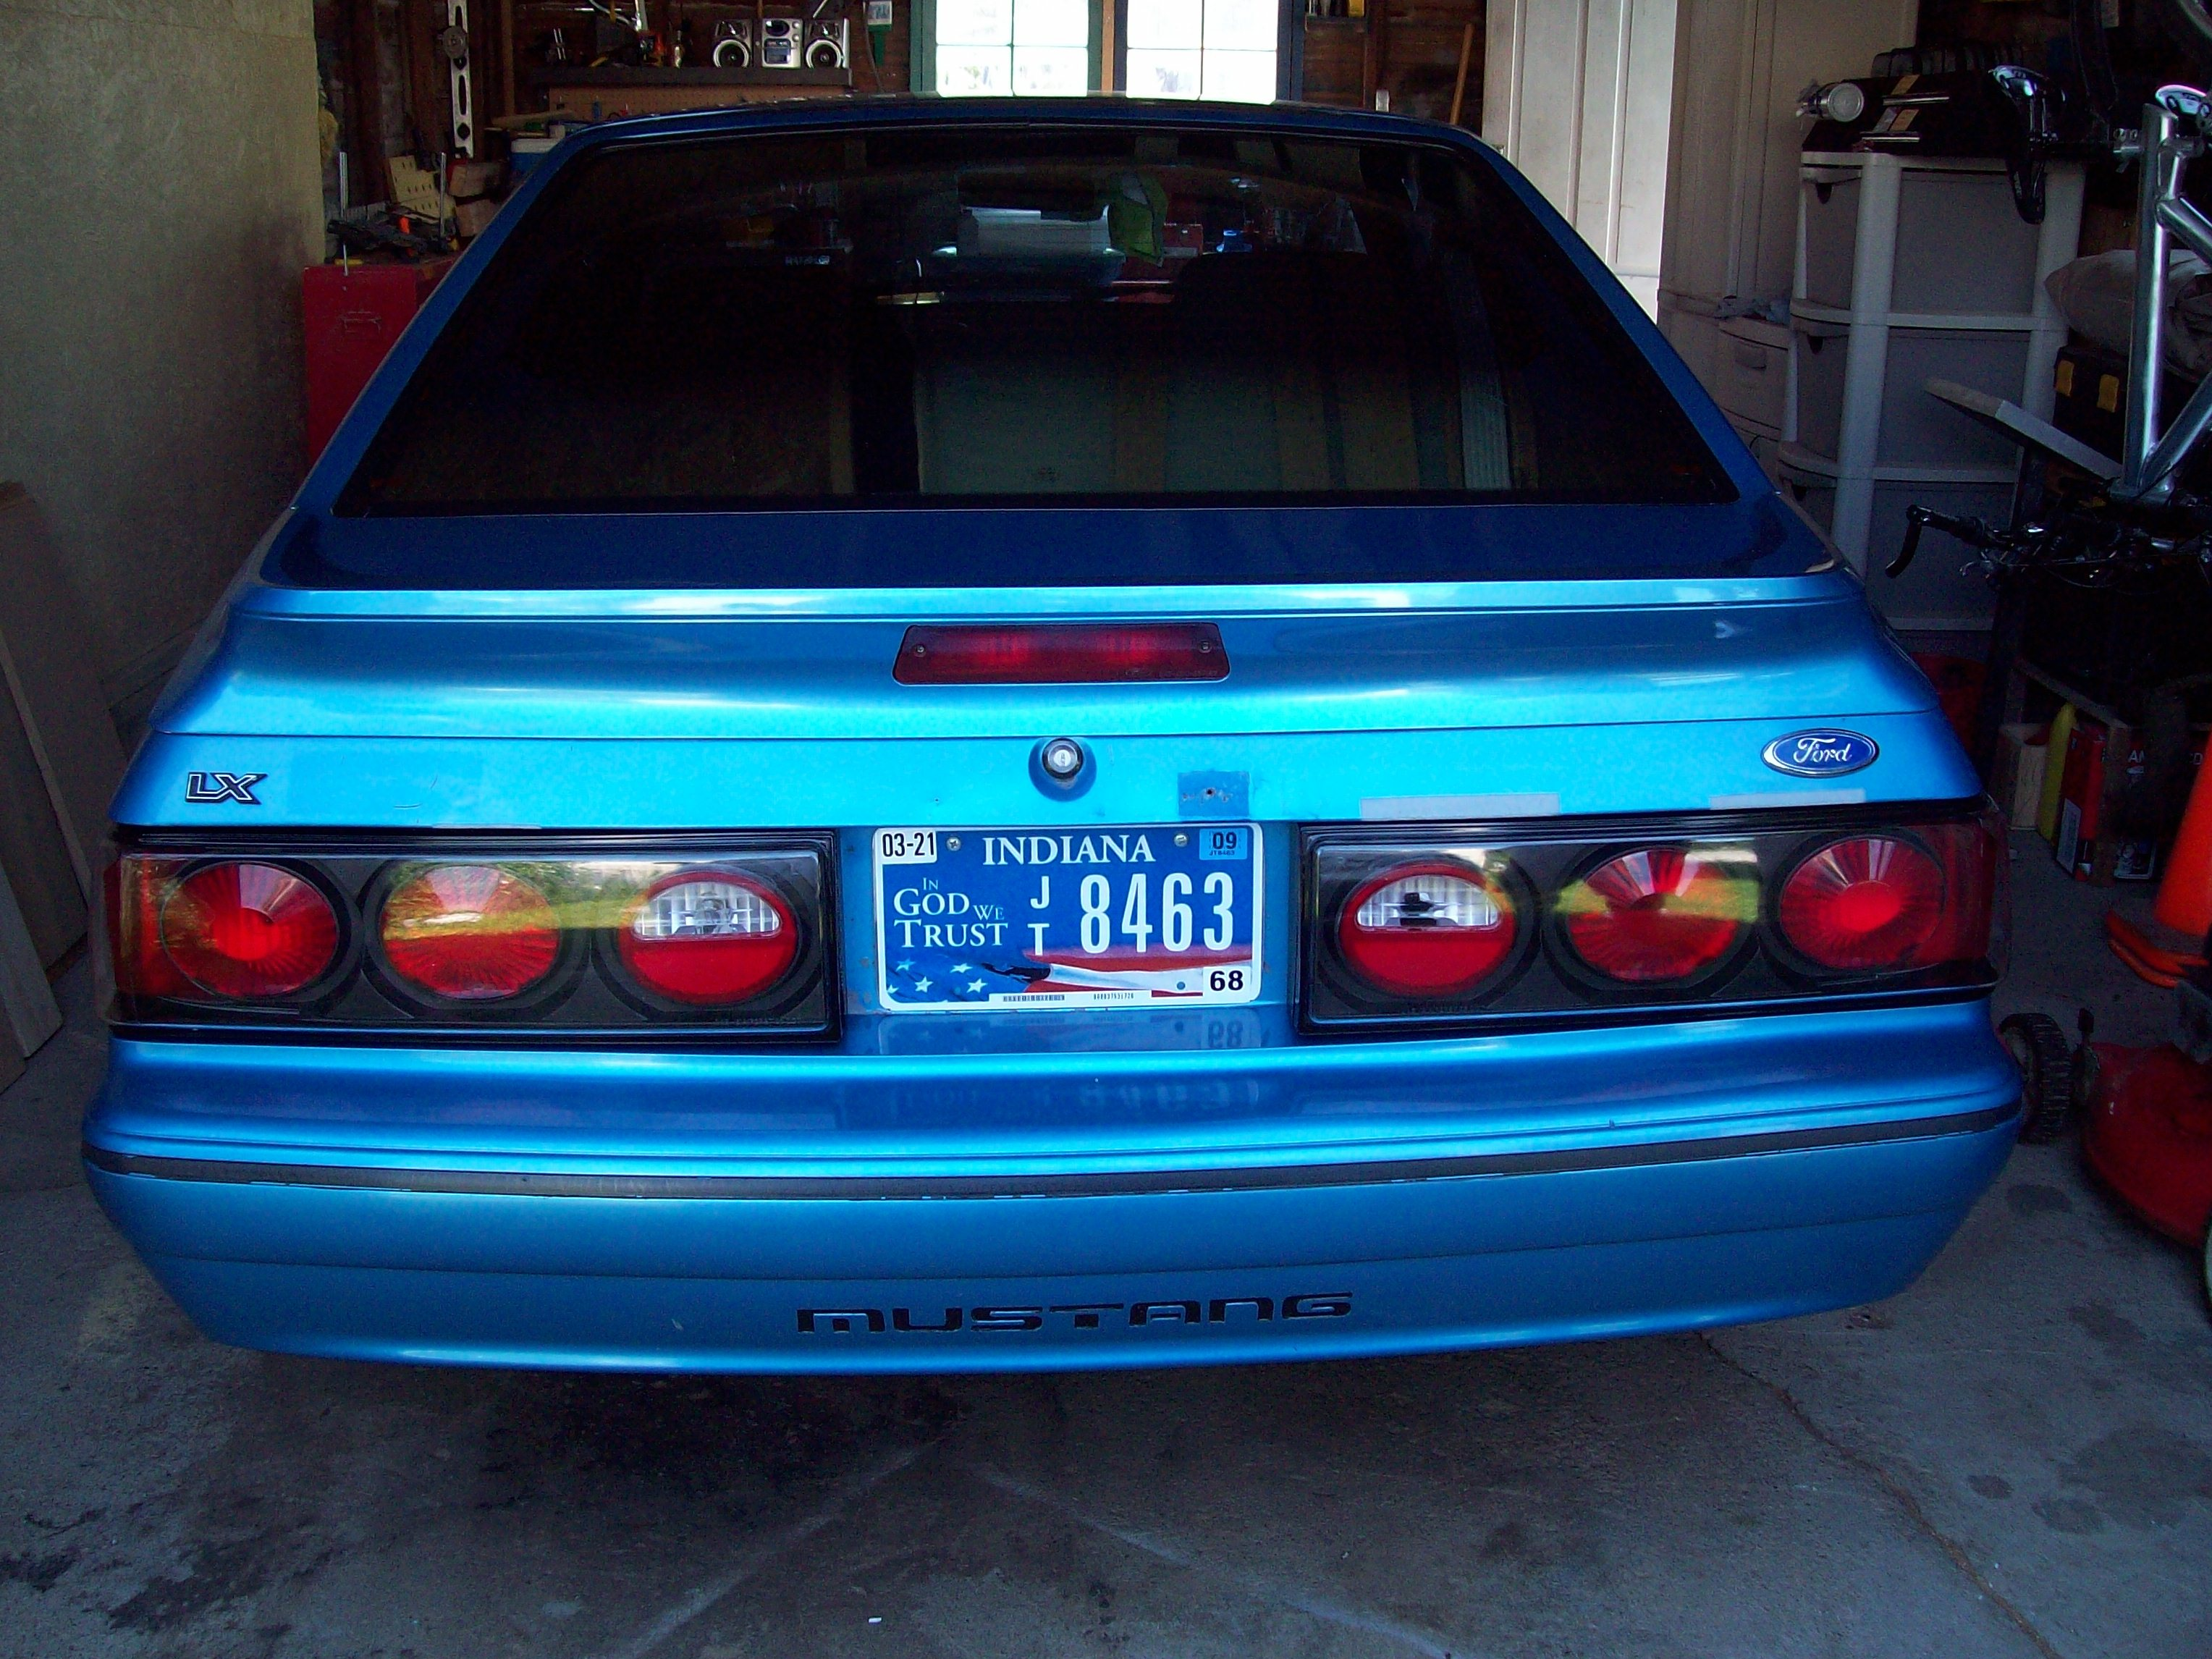 mychals92's 1992 Ford Mustang